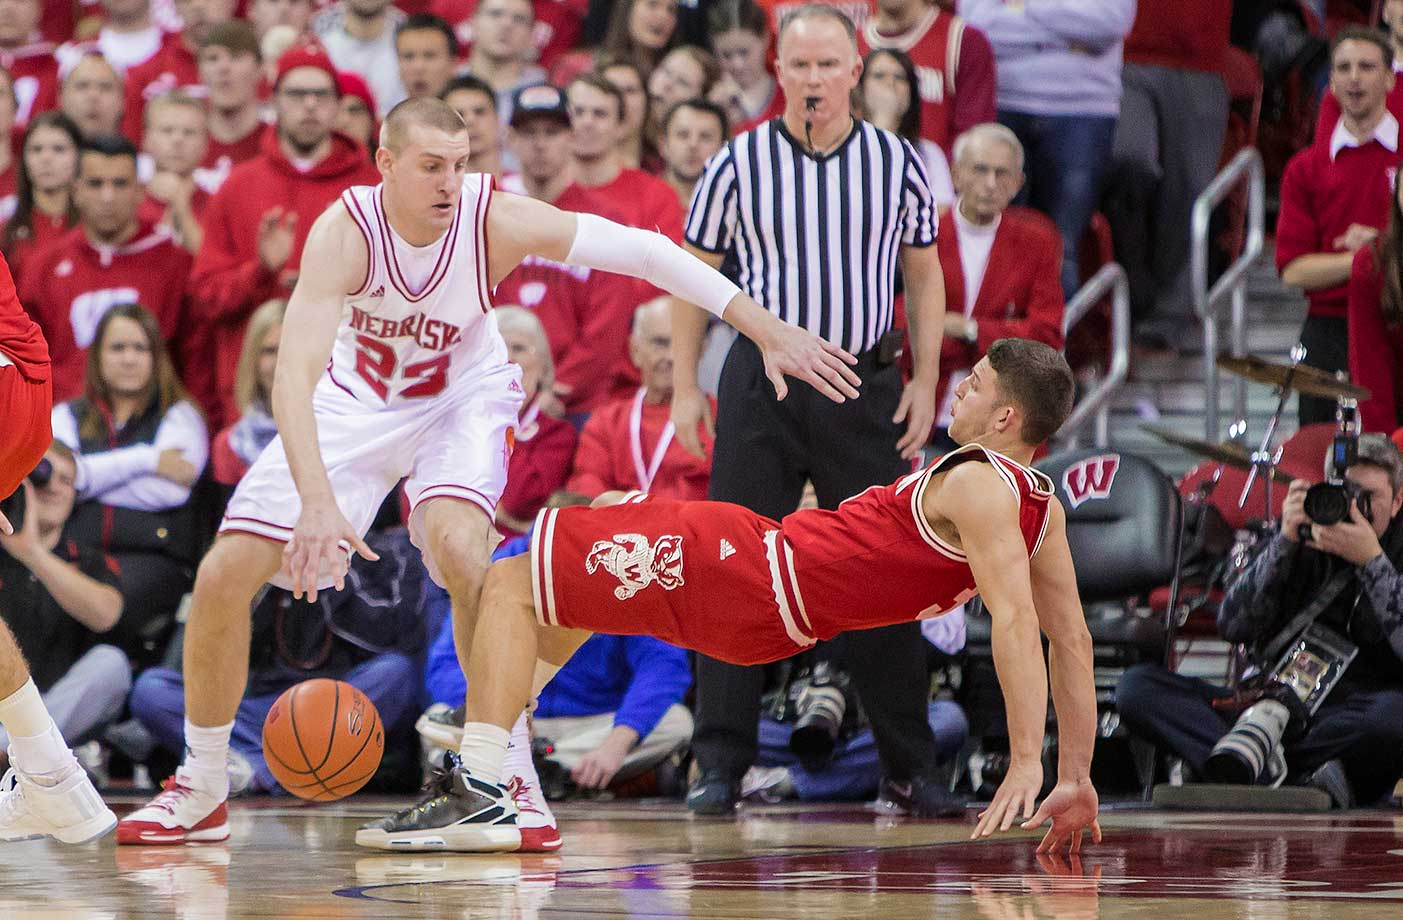 Wisconsin guard Zak Showalter draws the charge call against Nebraska forward Nick Fuller.